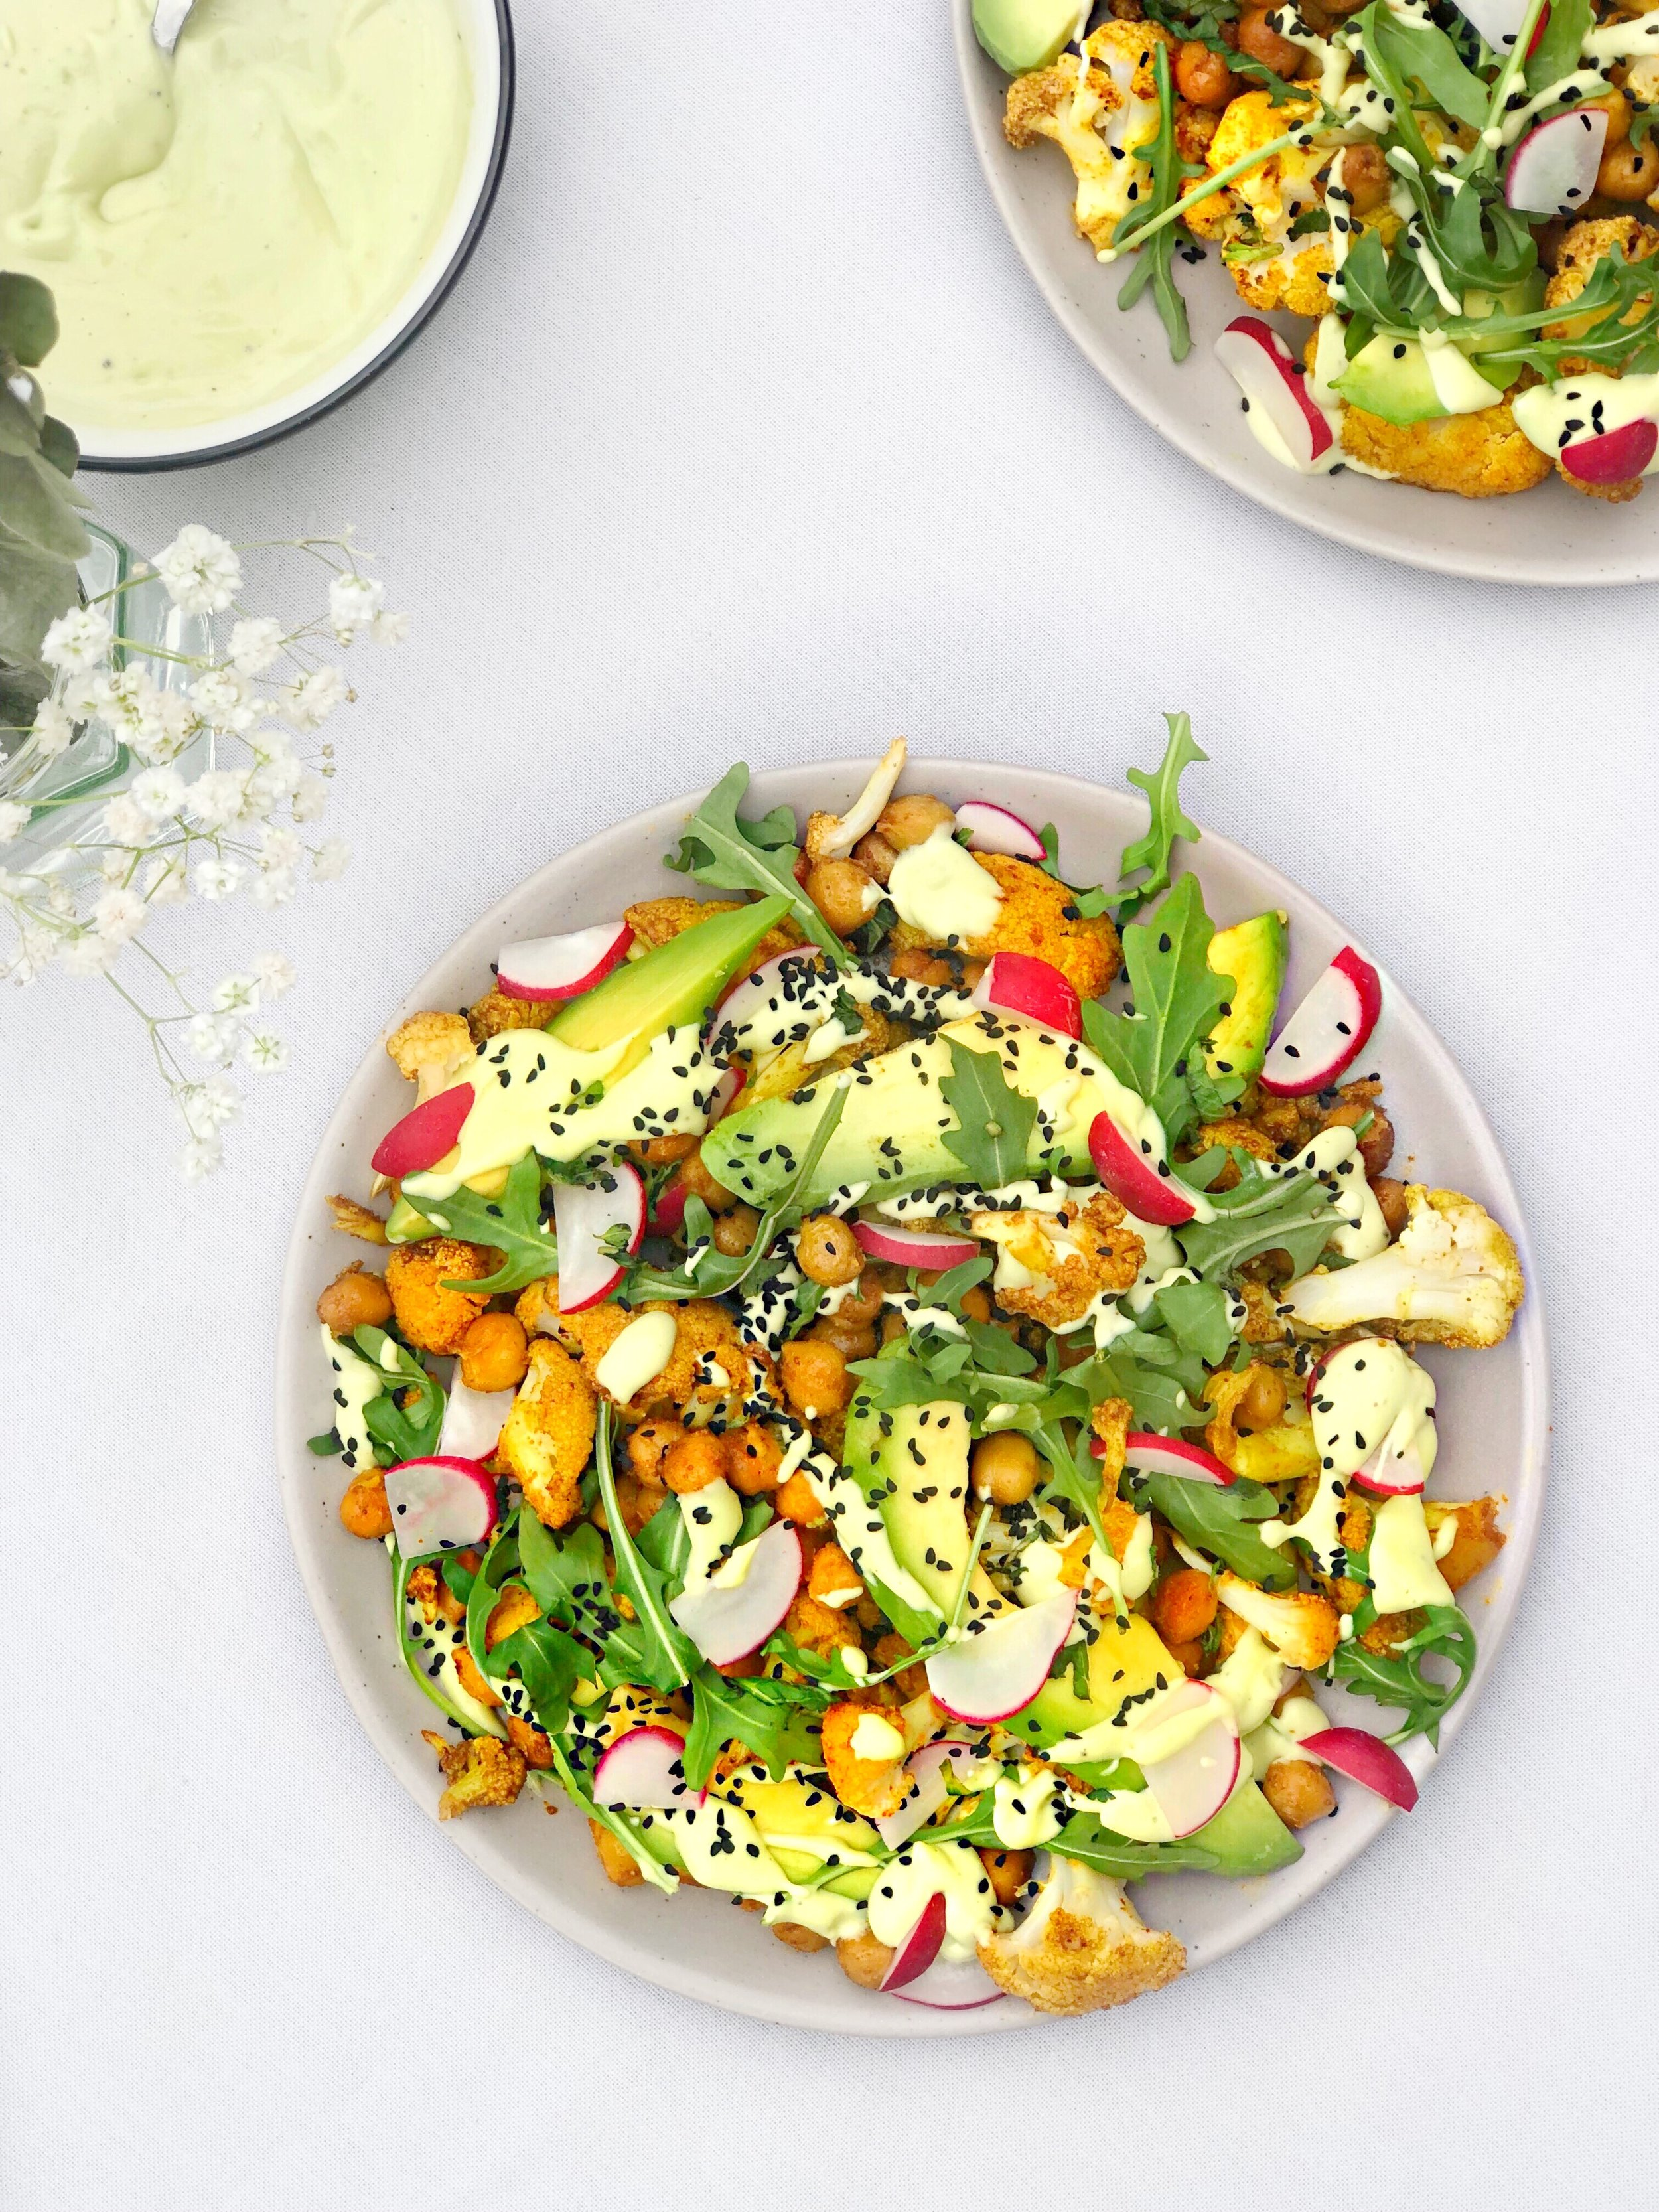 Roasted cauliflower and chickpea salad with avocado dressing